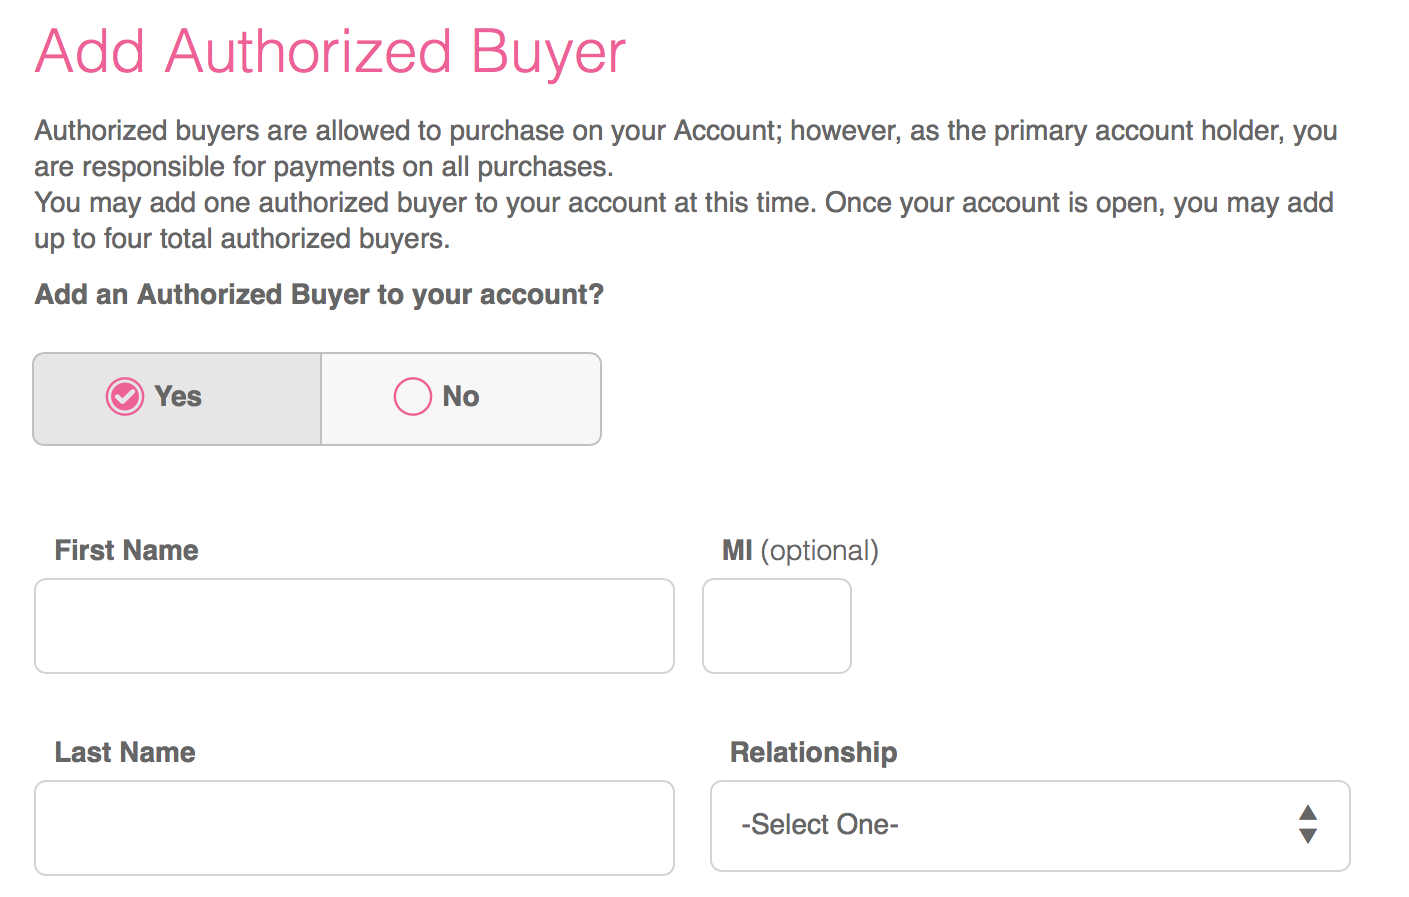 Adding An Authorized Buyer